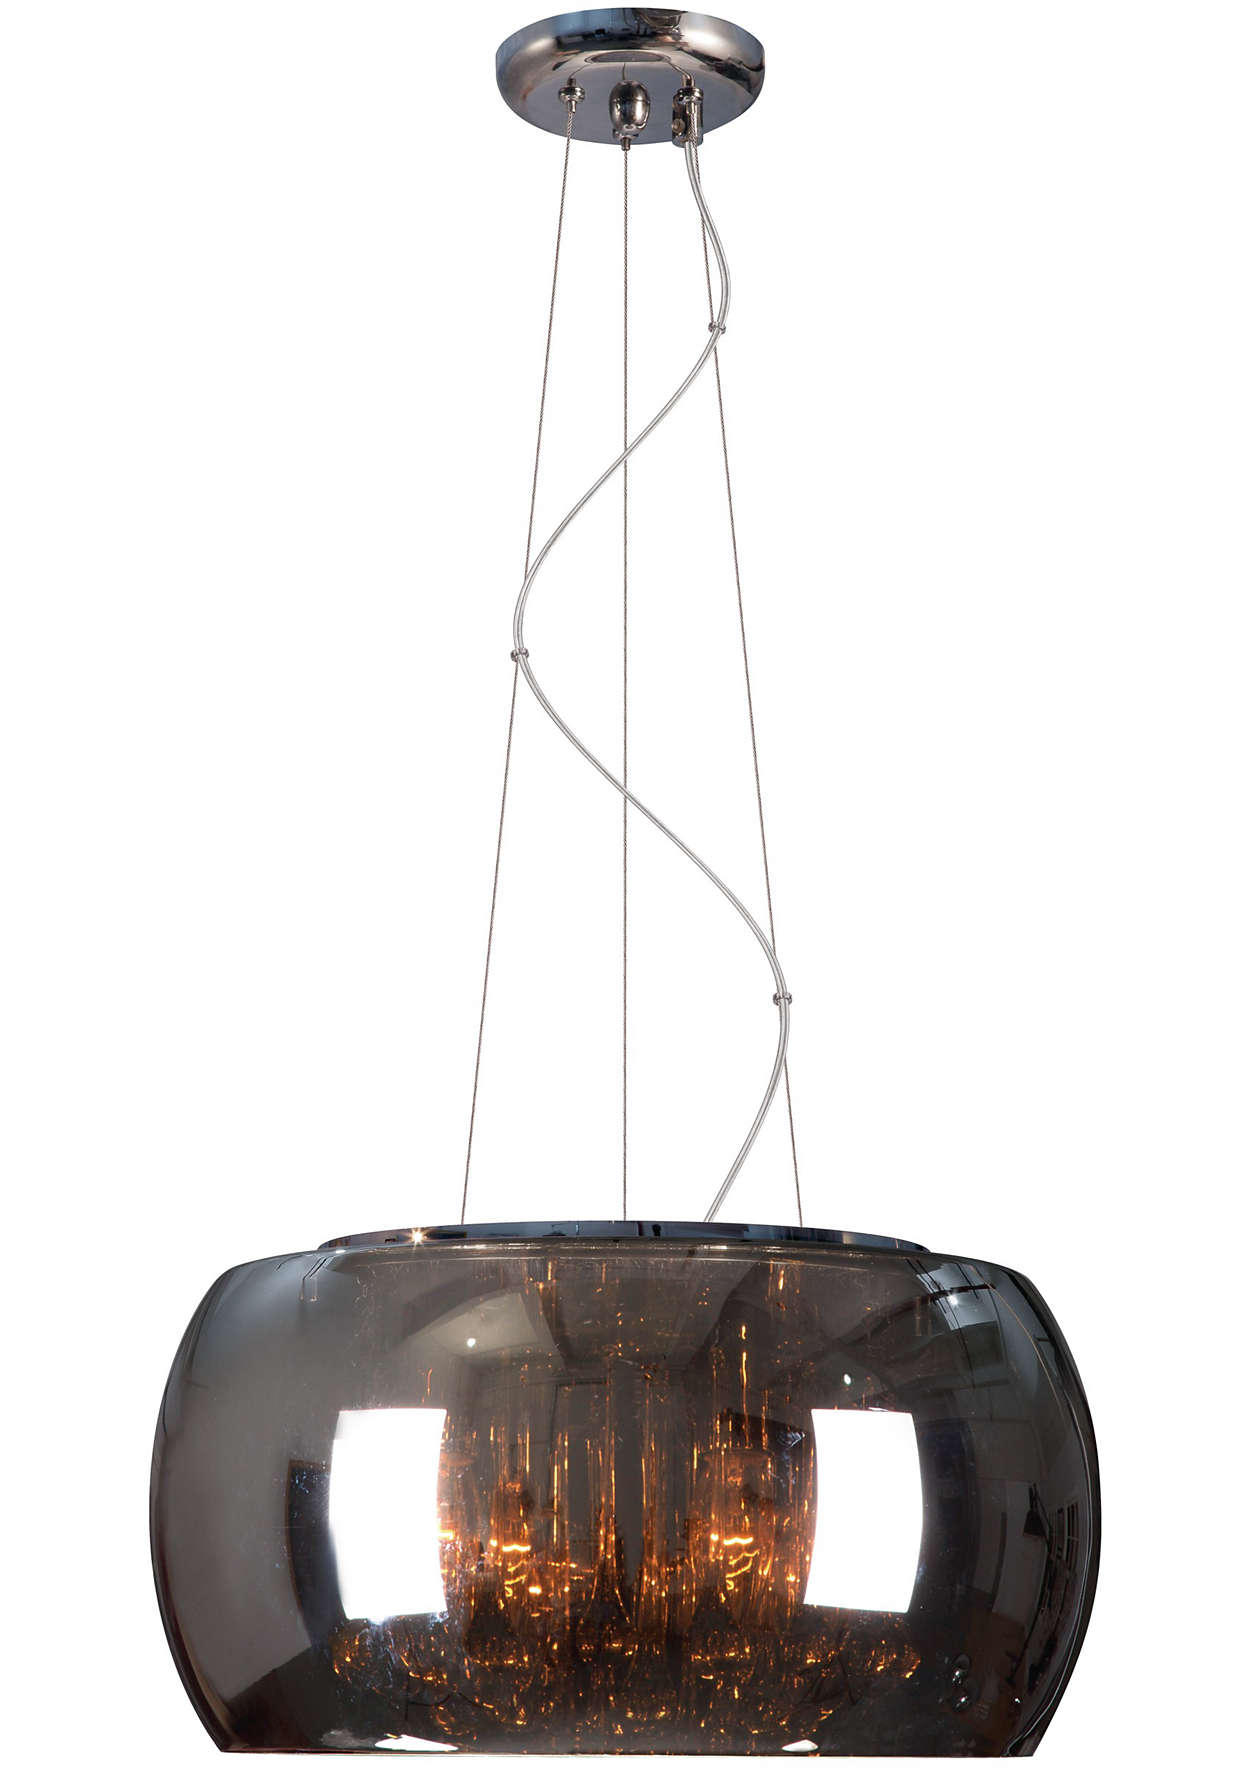 Suspension light 308992166 philips highlight your elegance aloadofball Images